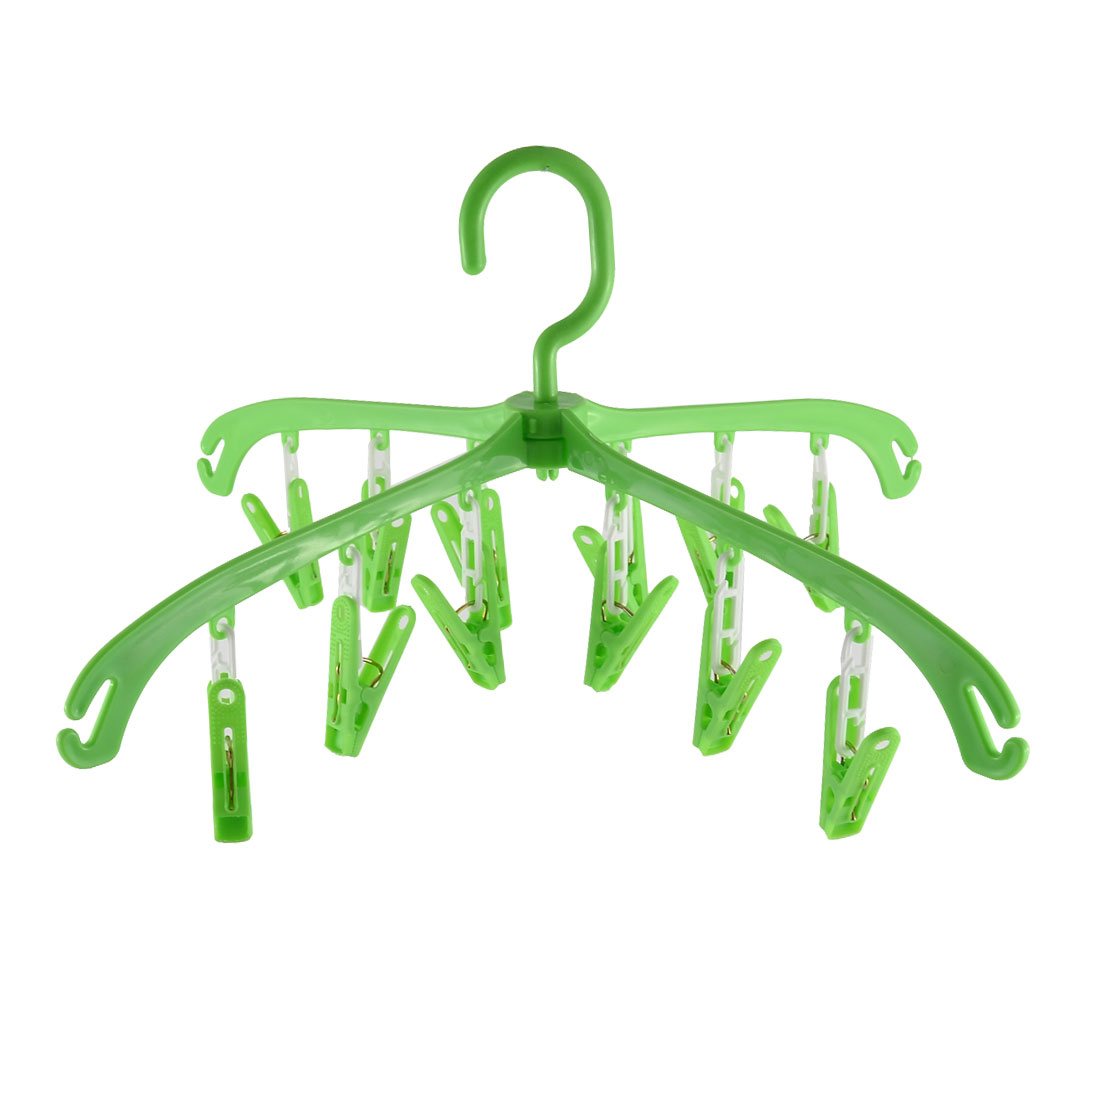 Household Plastic Foldable Clothing Socks Towels Clothes Hanger Clips Green